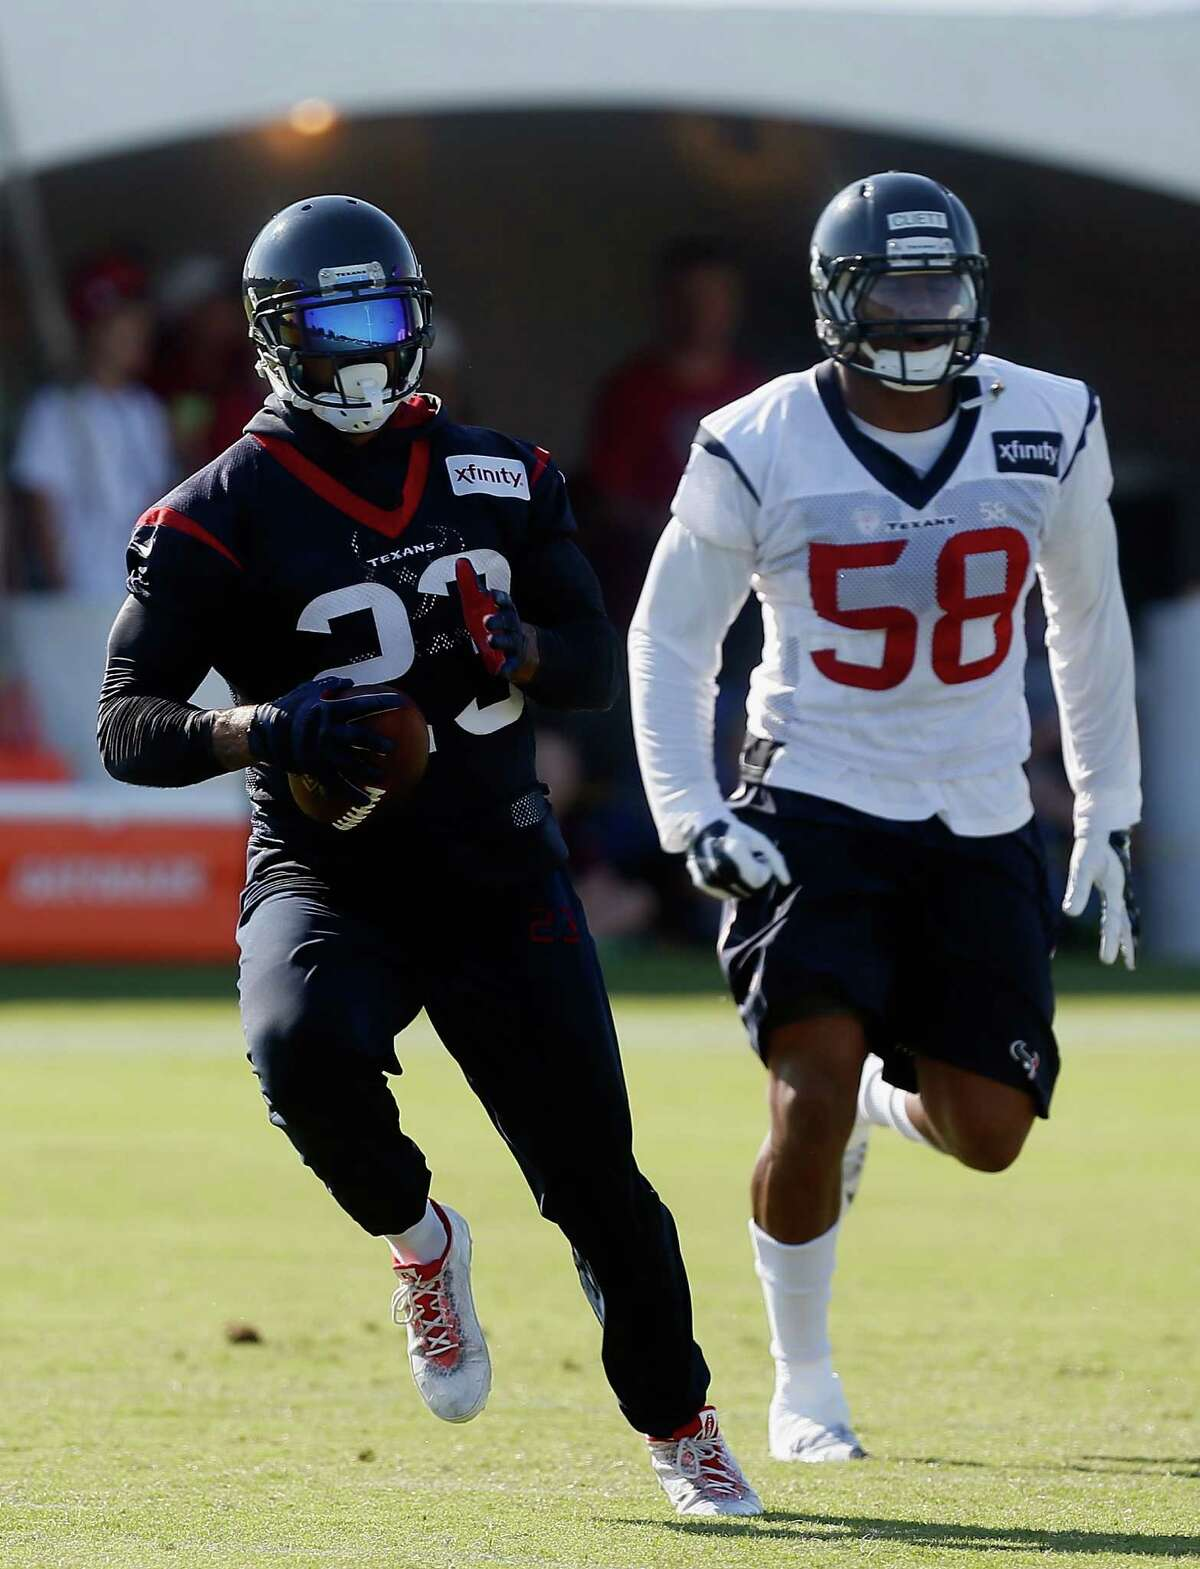 Houston Texans running back Arian Foster (23) makes a catch as aHouston Texans outside linebacker Reshard Cliett (58) defends during an NFL football training camp at the Methodist Training Center on Sunday August 2, 2015 in Houston.